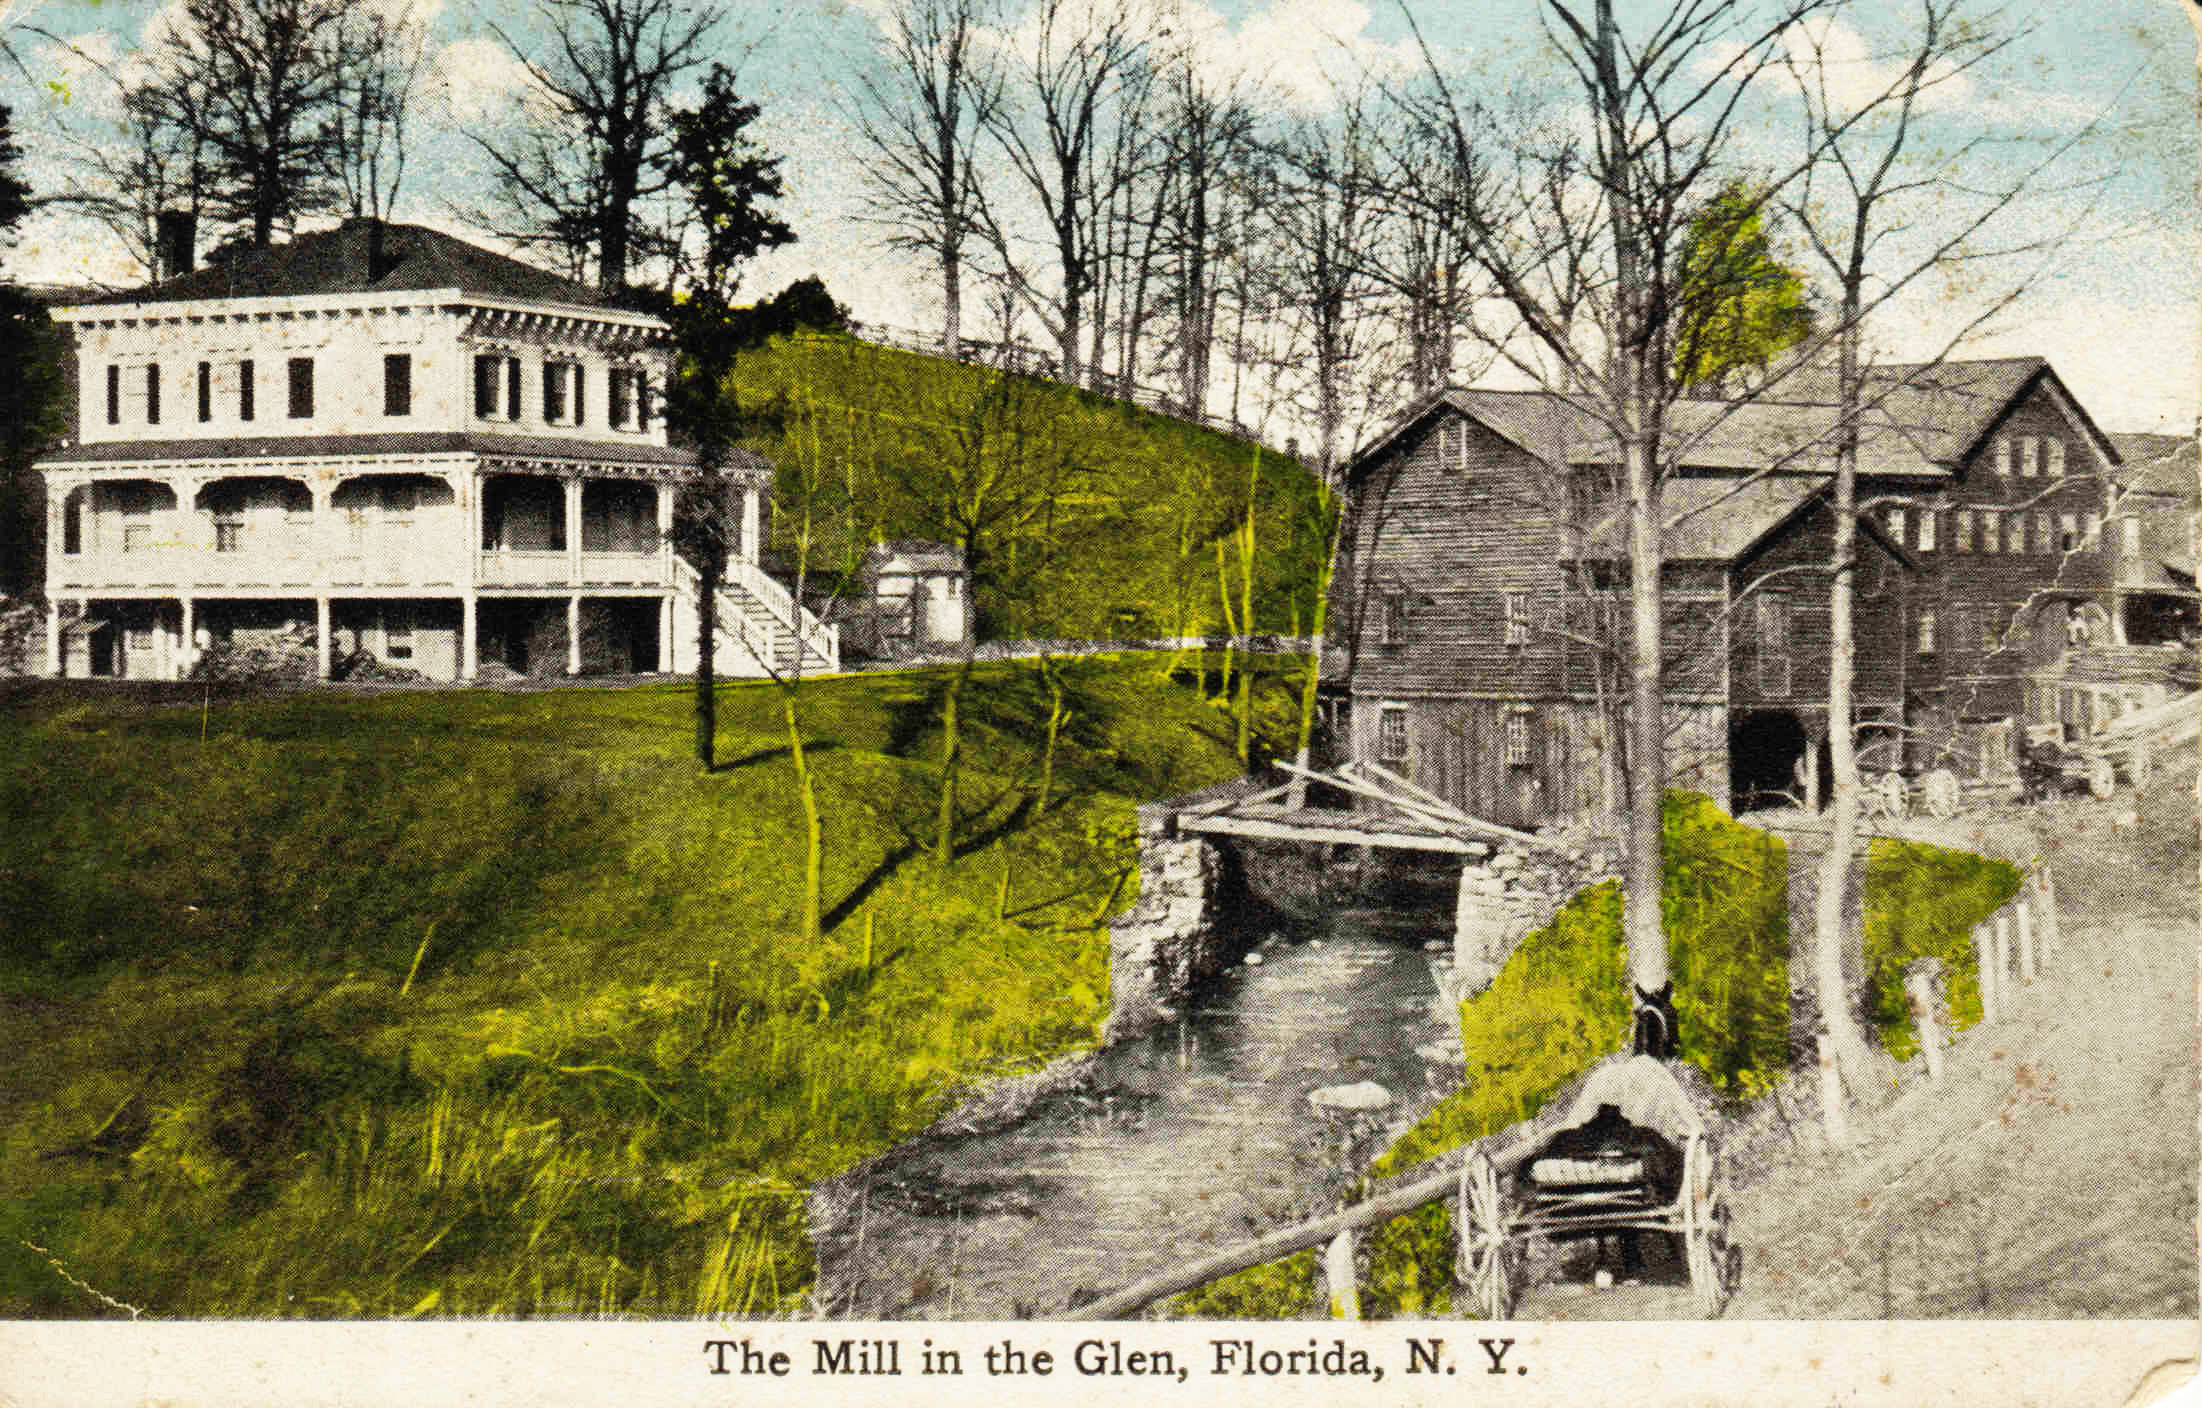 The Mill in the Glen